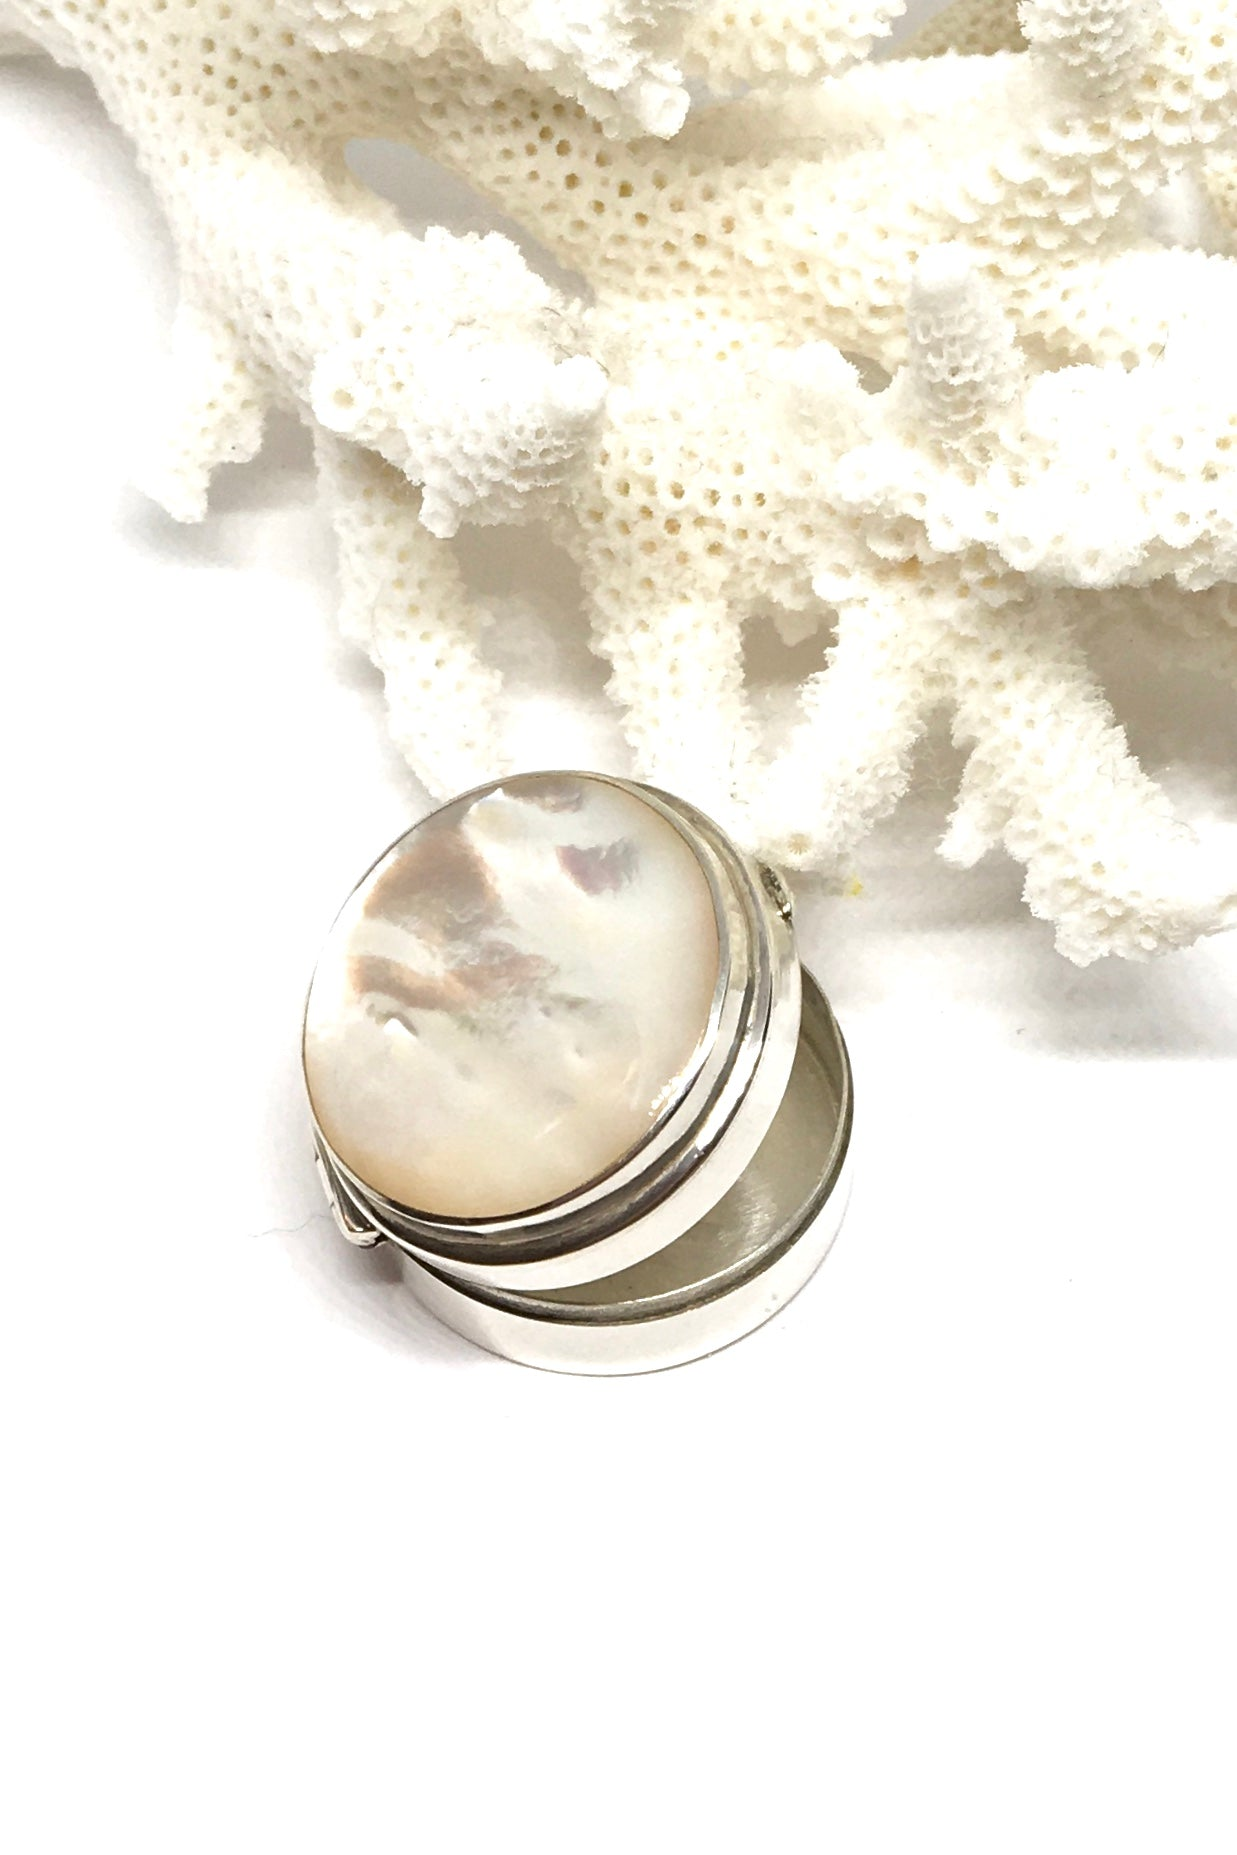 shiny silver pill box inlaid with shimmery Mother of Pearl shell on the lid.